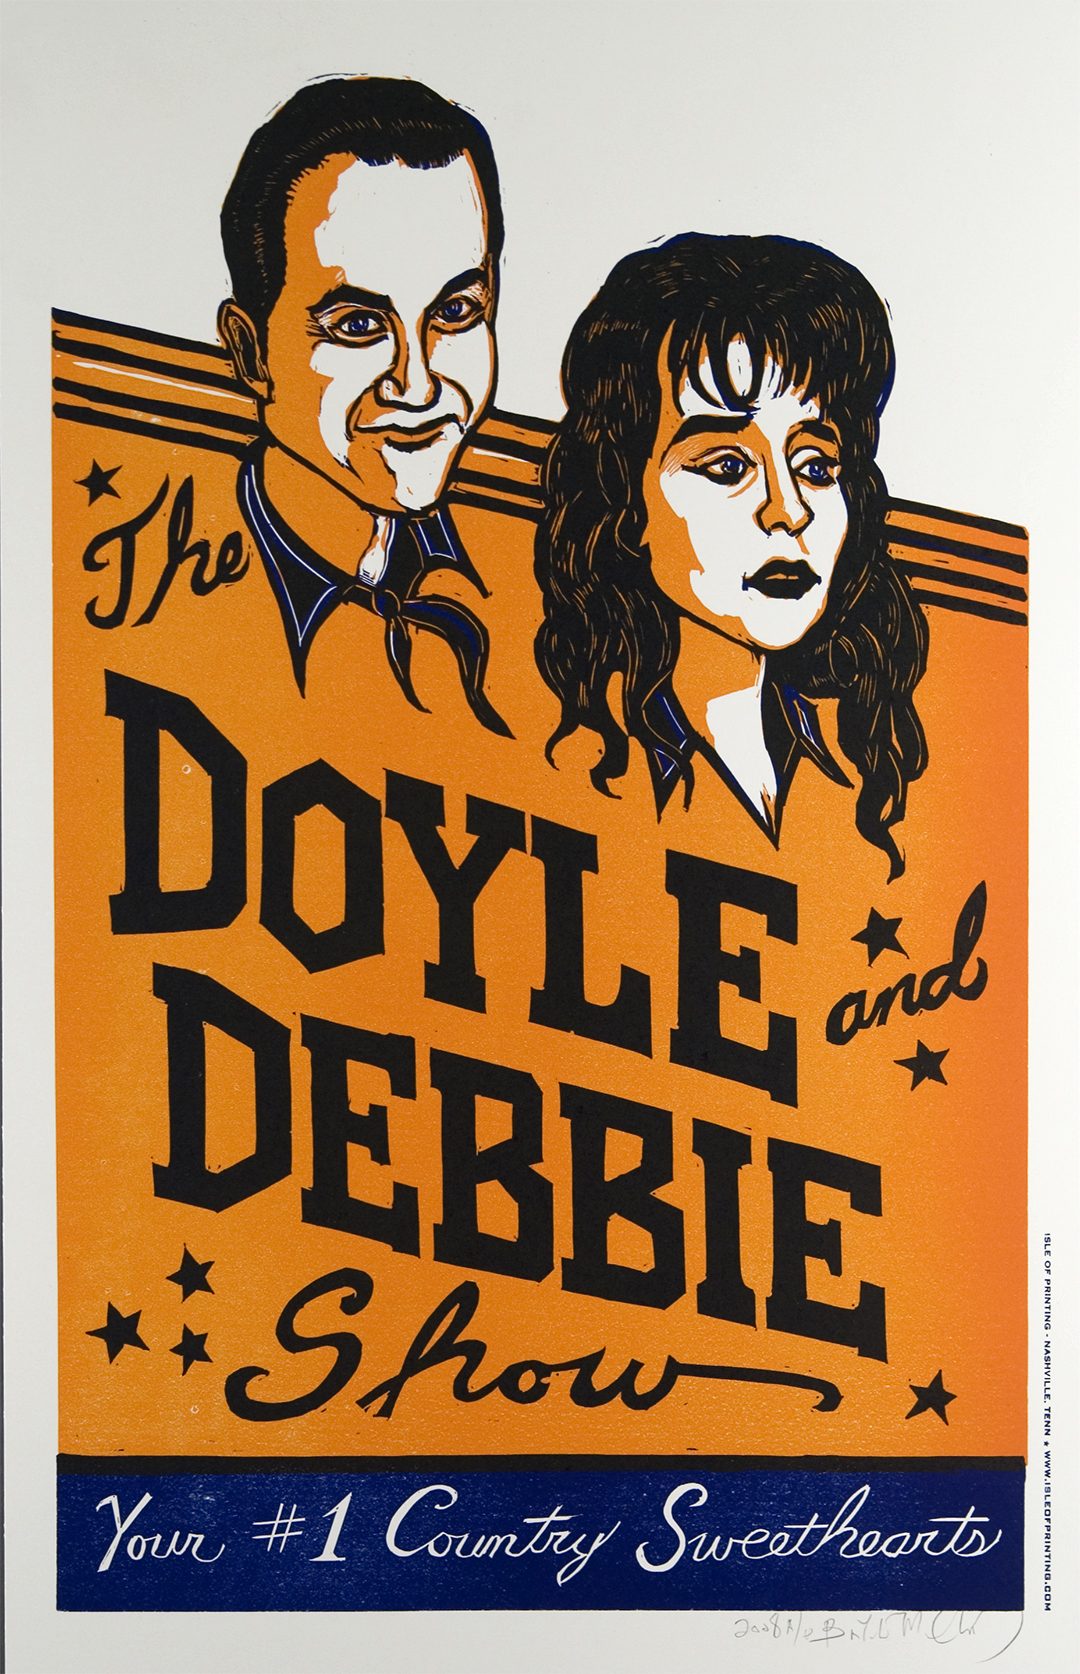 doyle-and-debbie.jpg